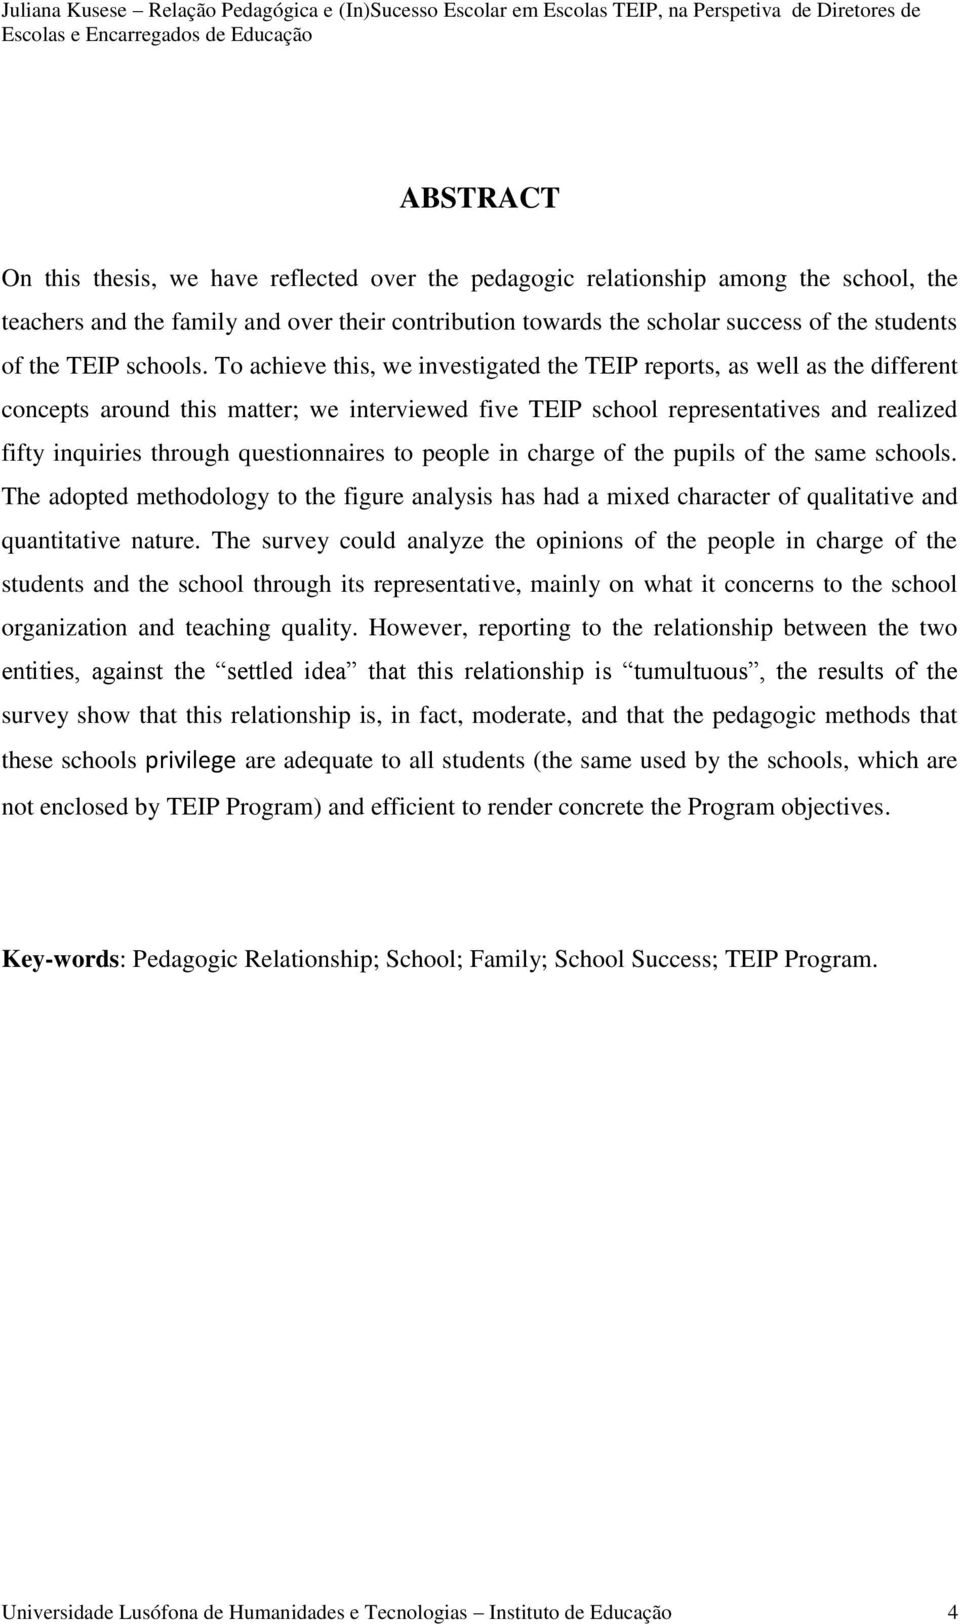 To achieve this, we investigated the TEIP reports, as well as the different concepts around this matter; we interviewed five TEIP school representatives and realized fifty inquiries through